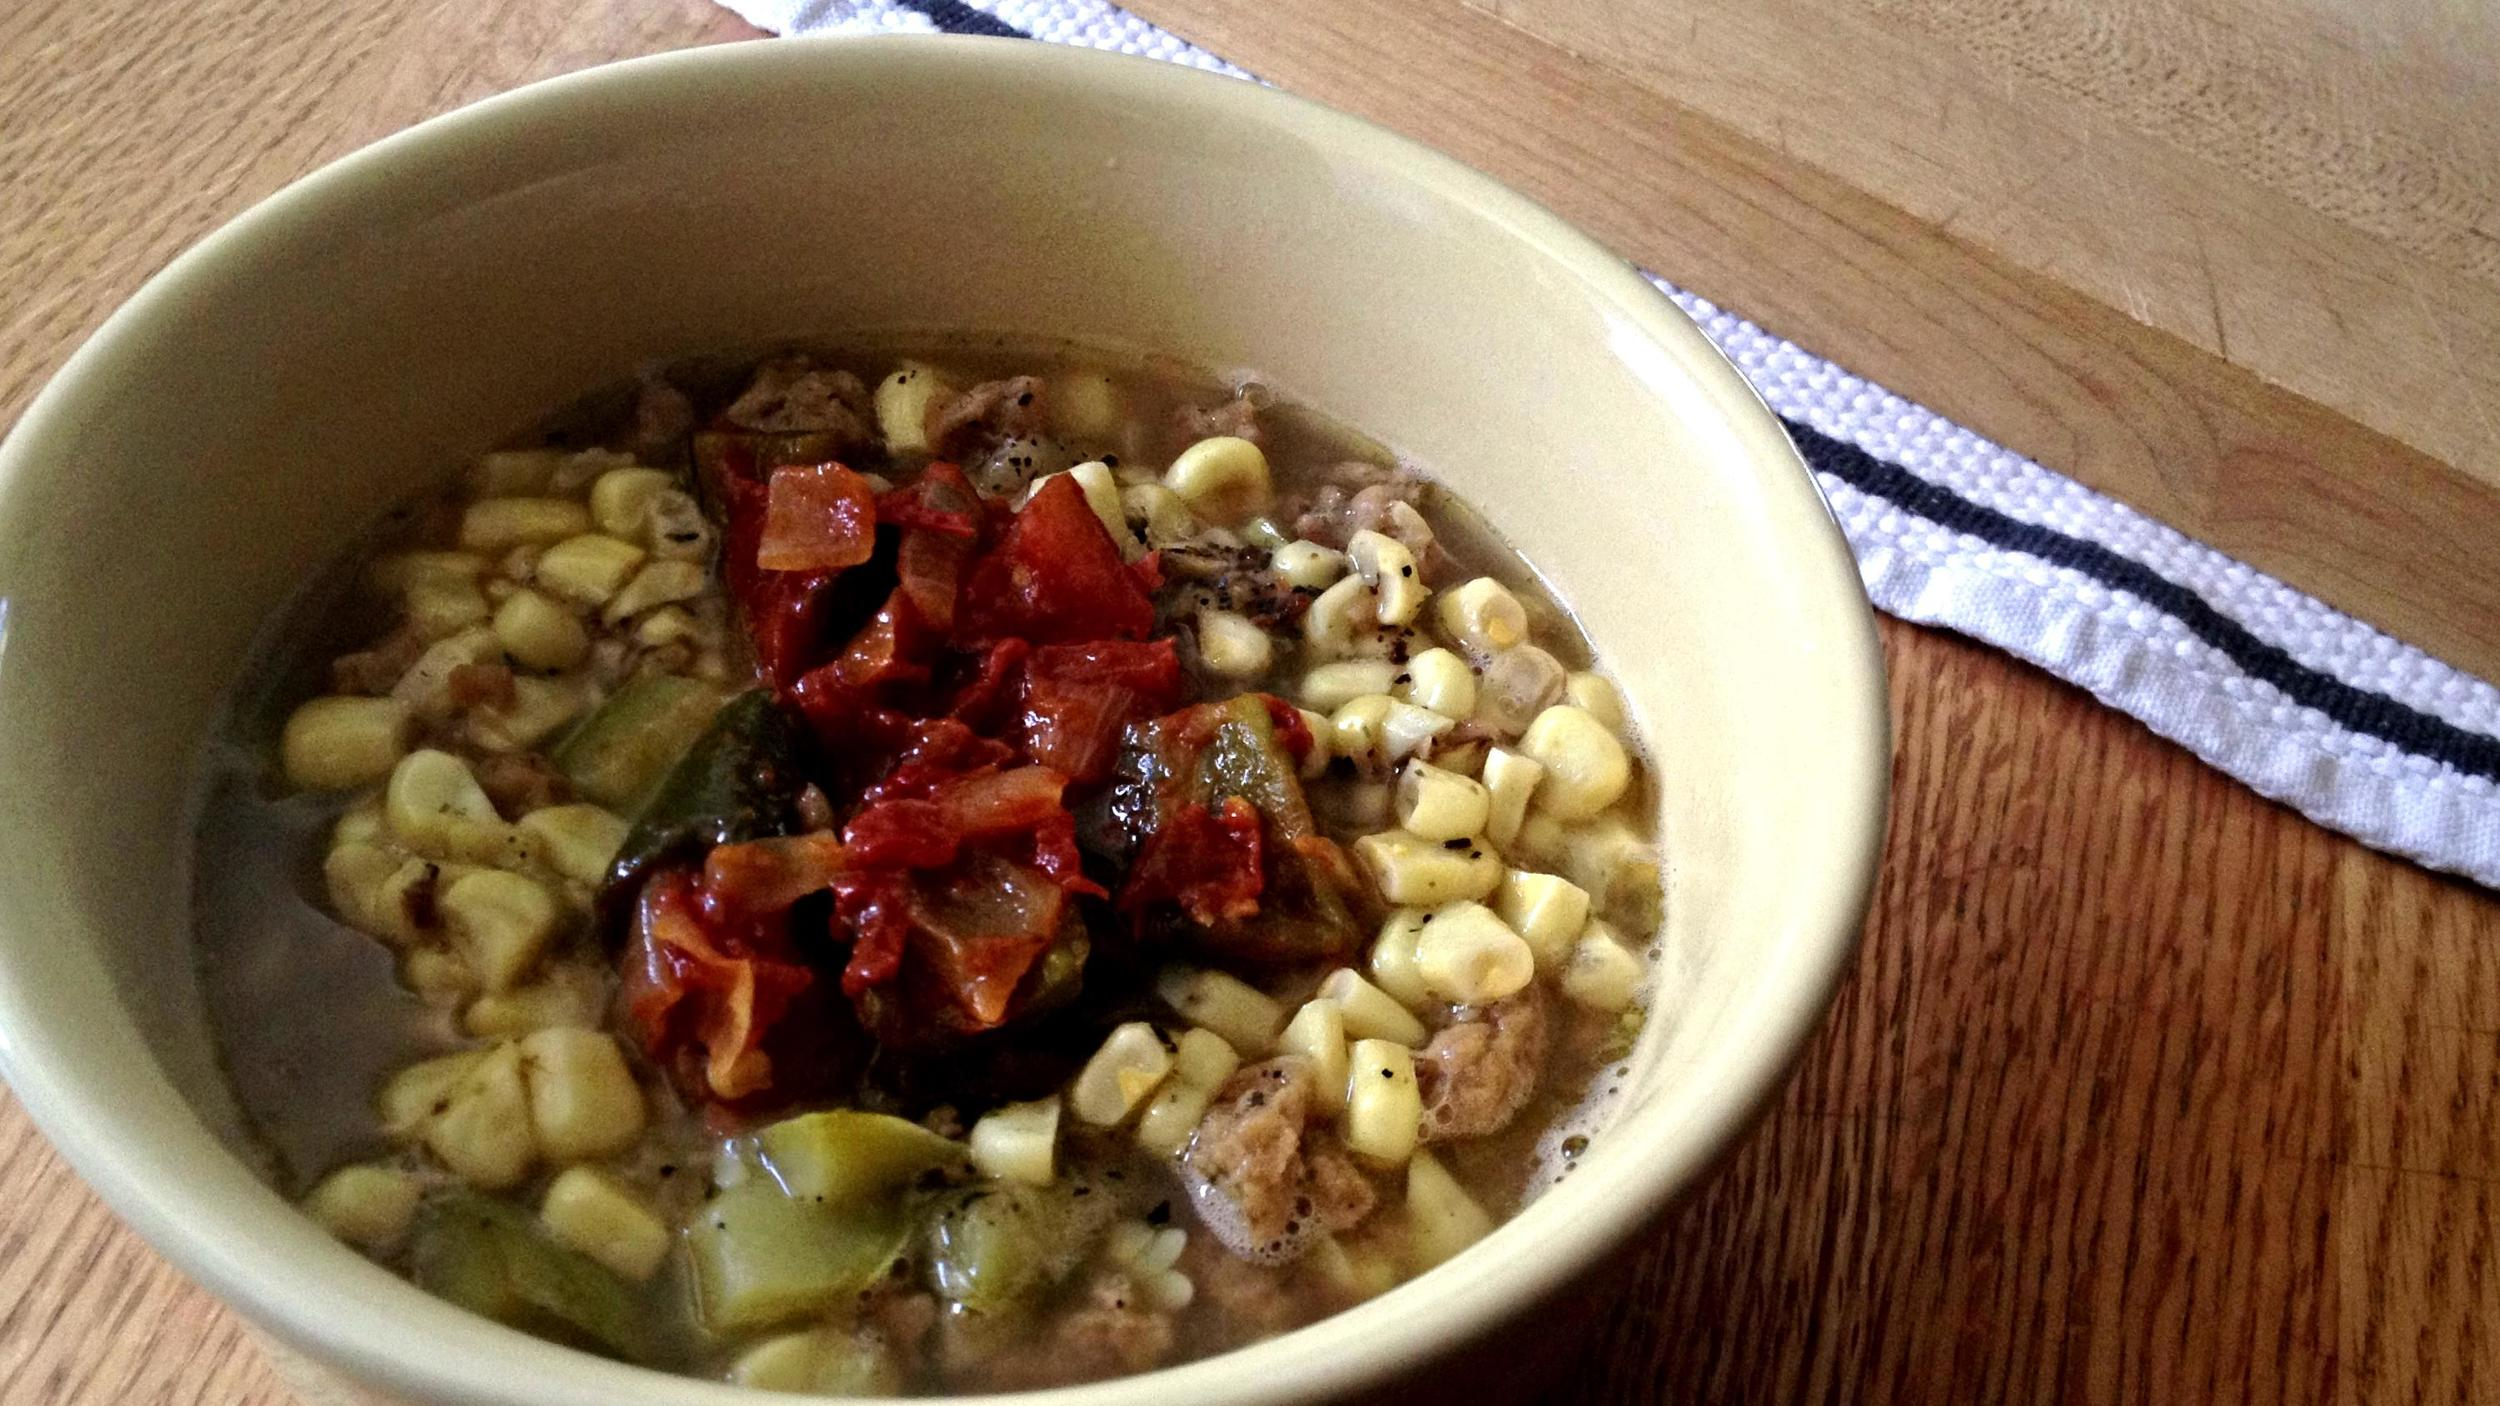 Hopi fresh corn stew topped with green chile sauce